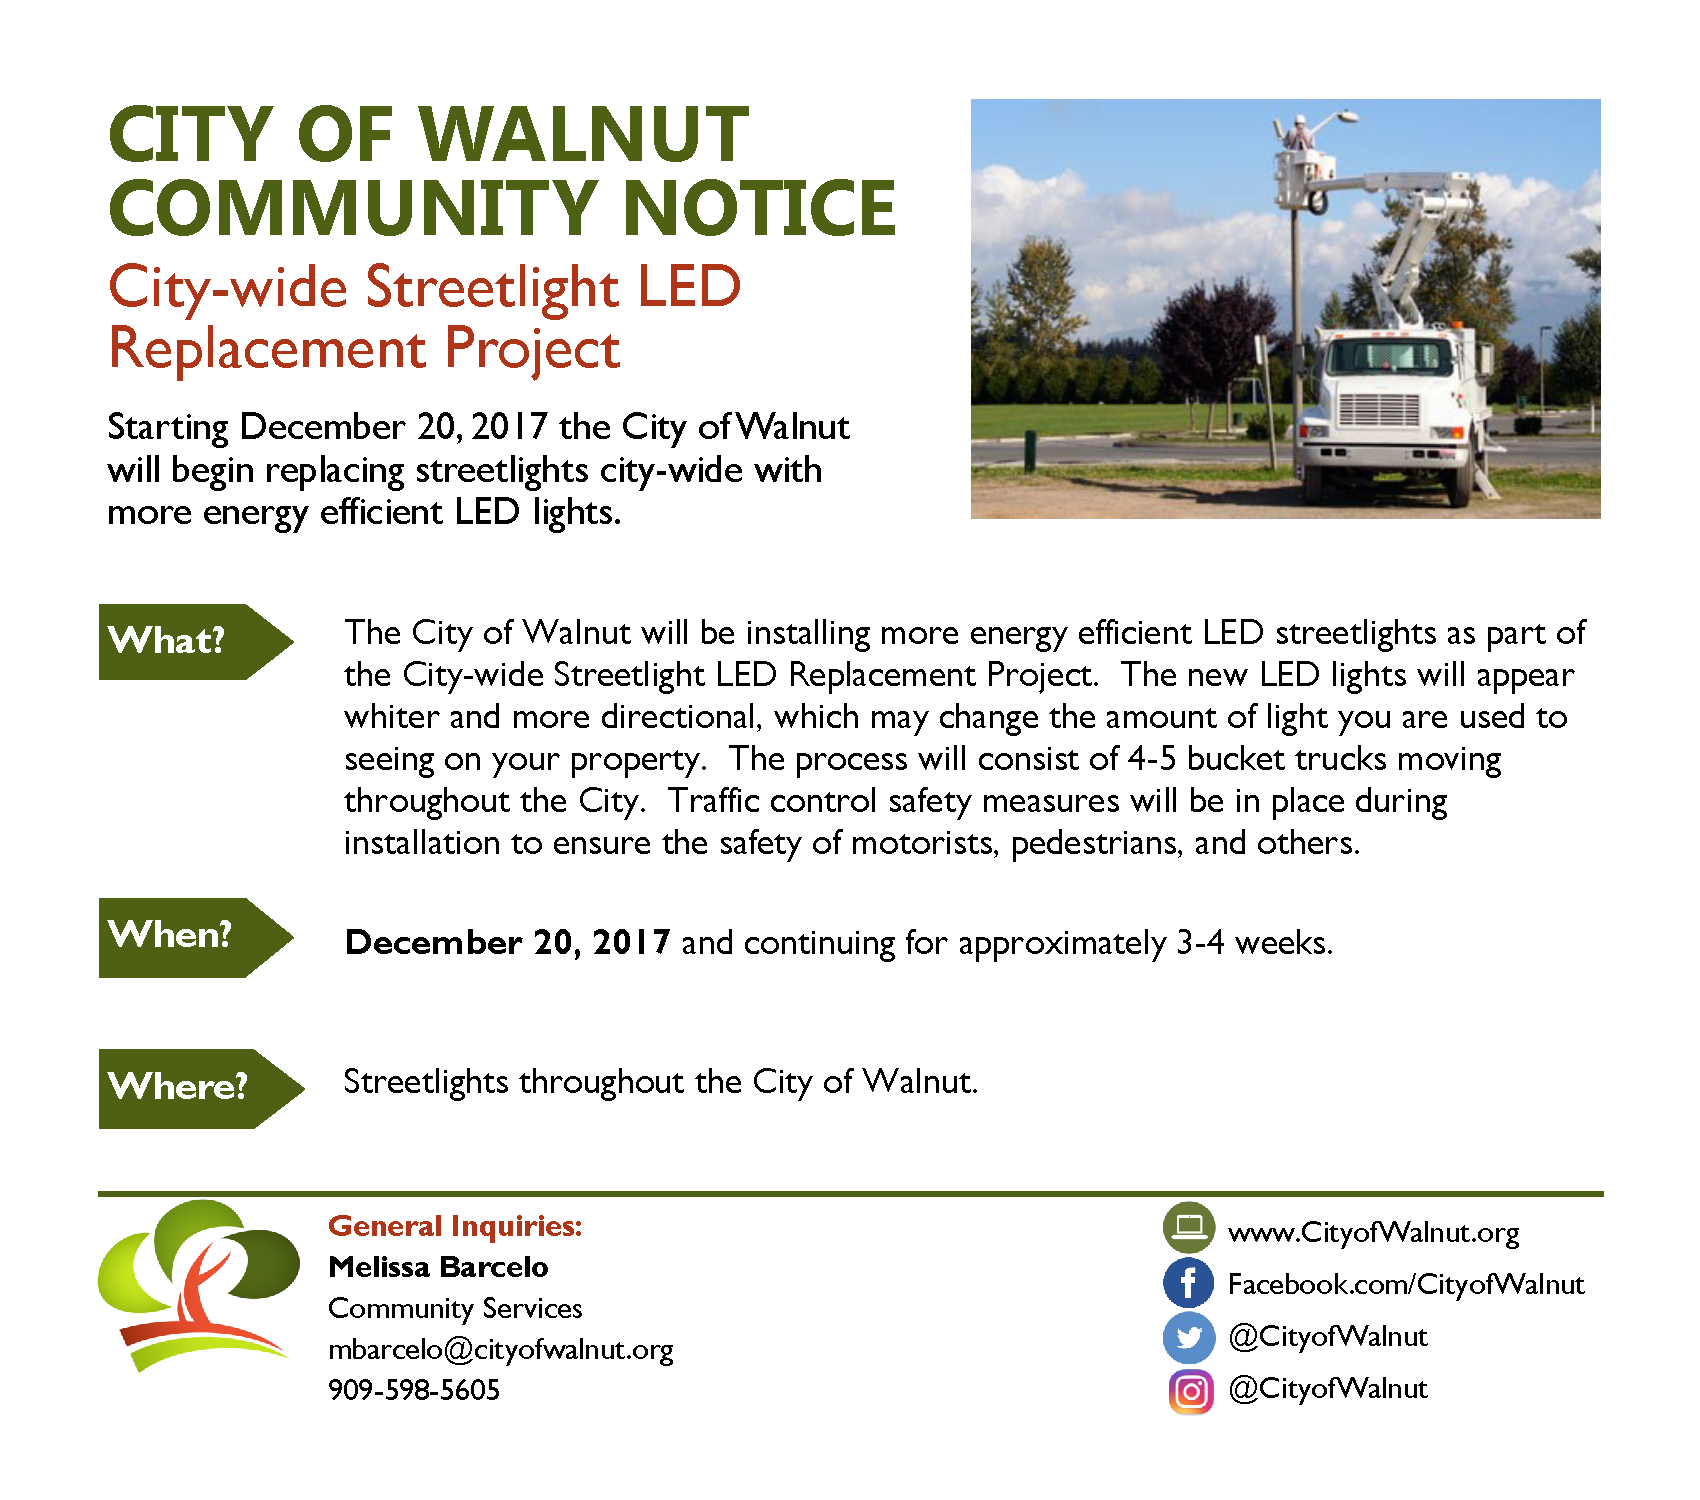 City-wide Streetlight LED Replacement Project